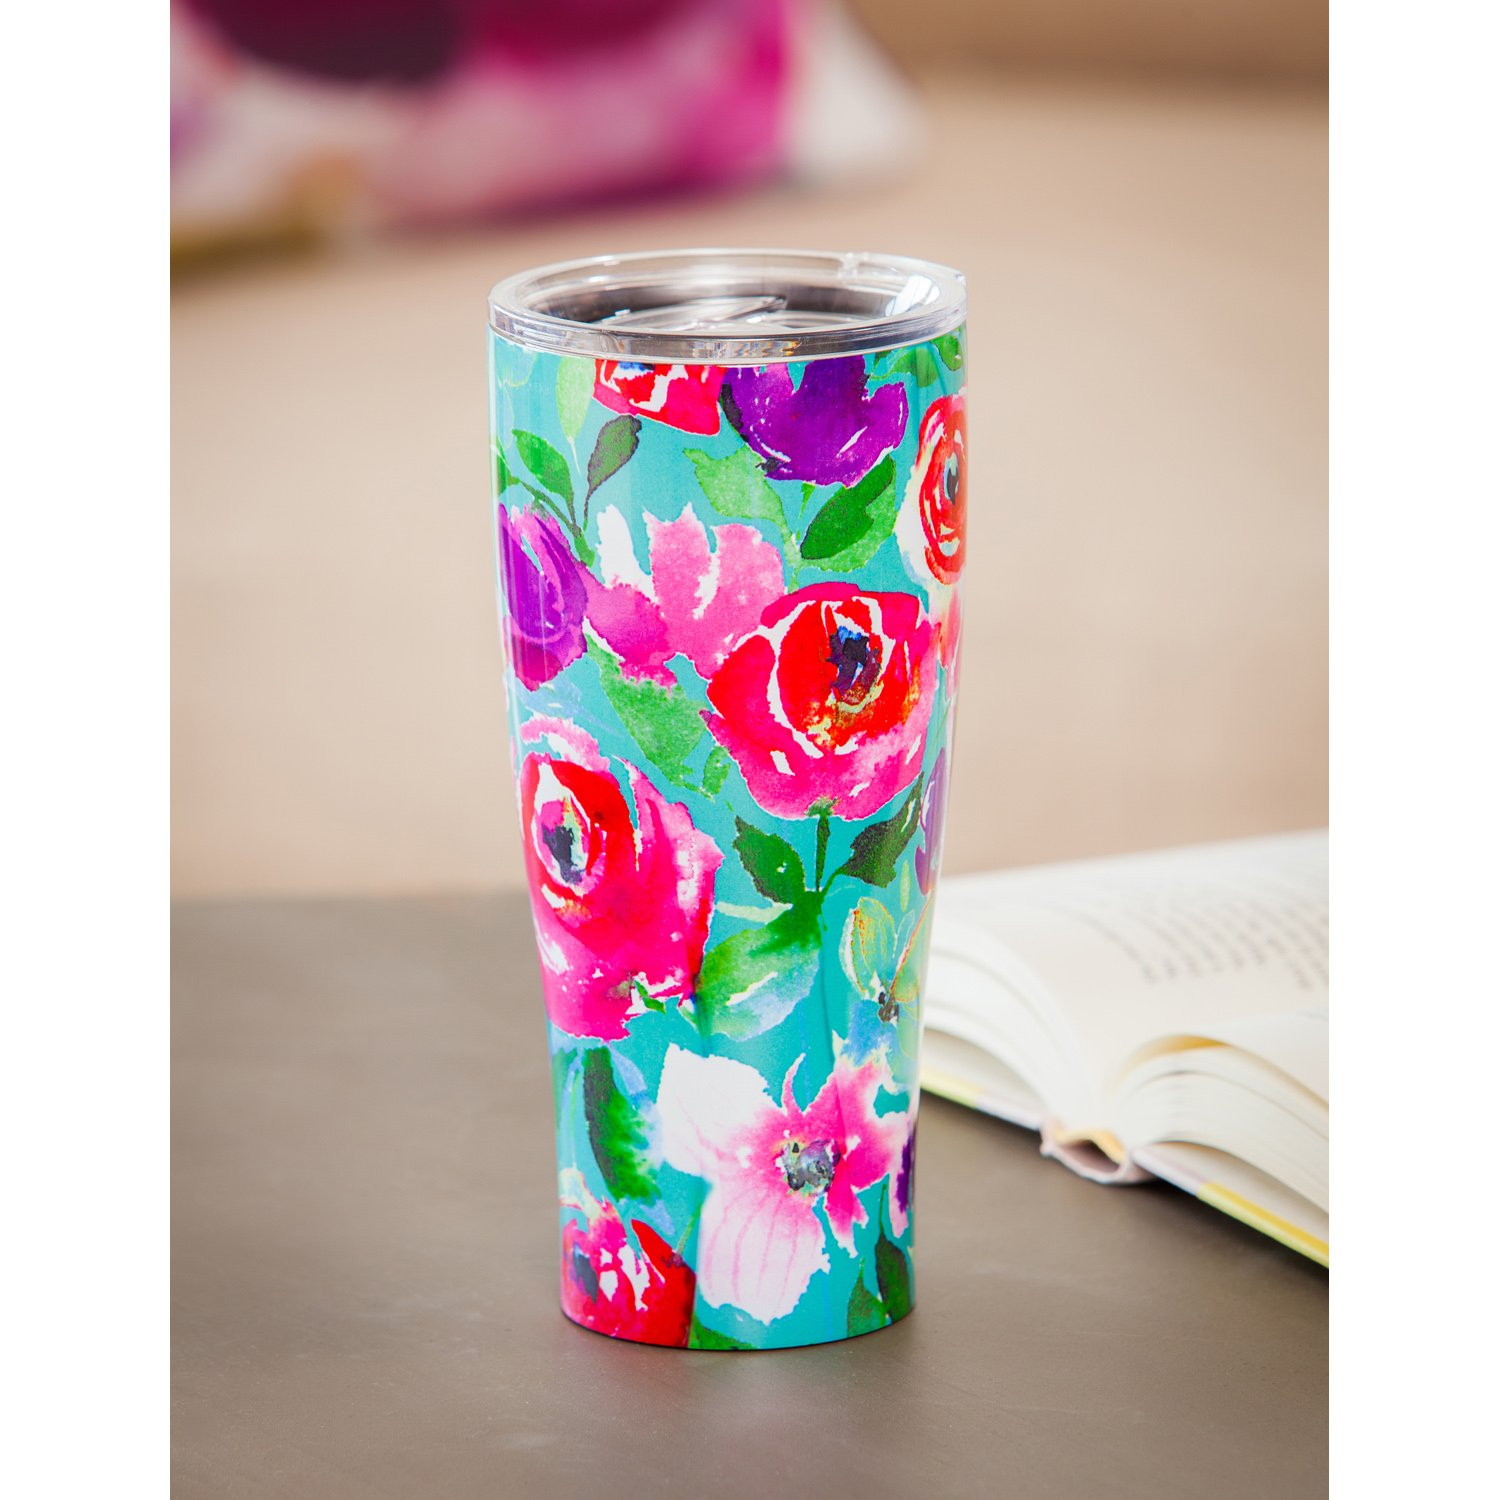 Cypress Home Boho Floral Party Stainless Steel Hot Beverage Travel Cup, 17 ounces by Cypress Home (Image #3)